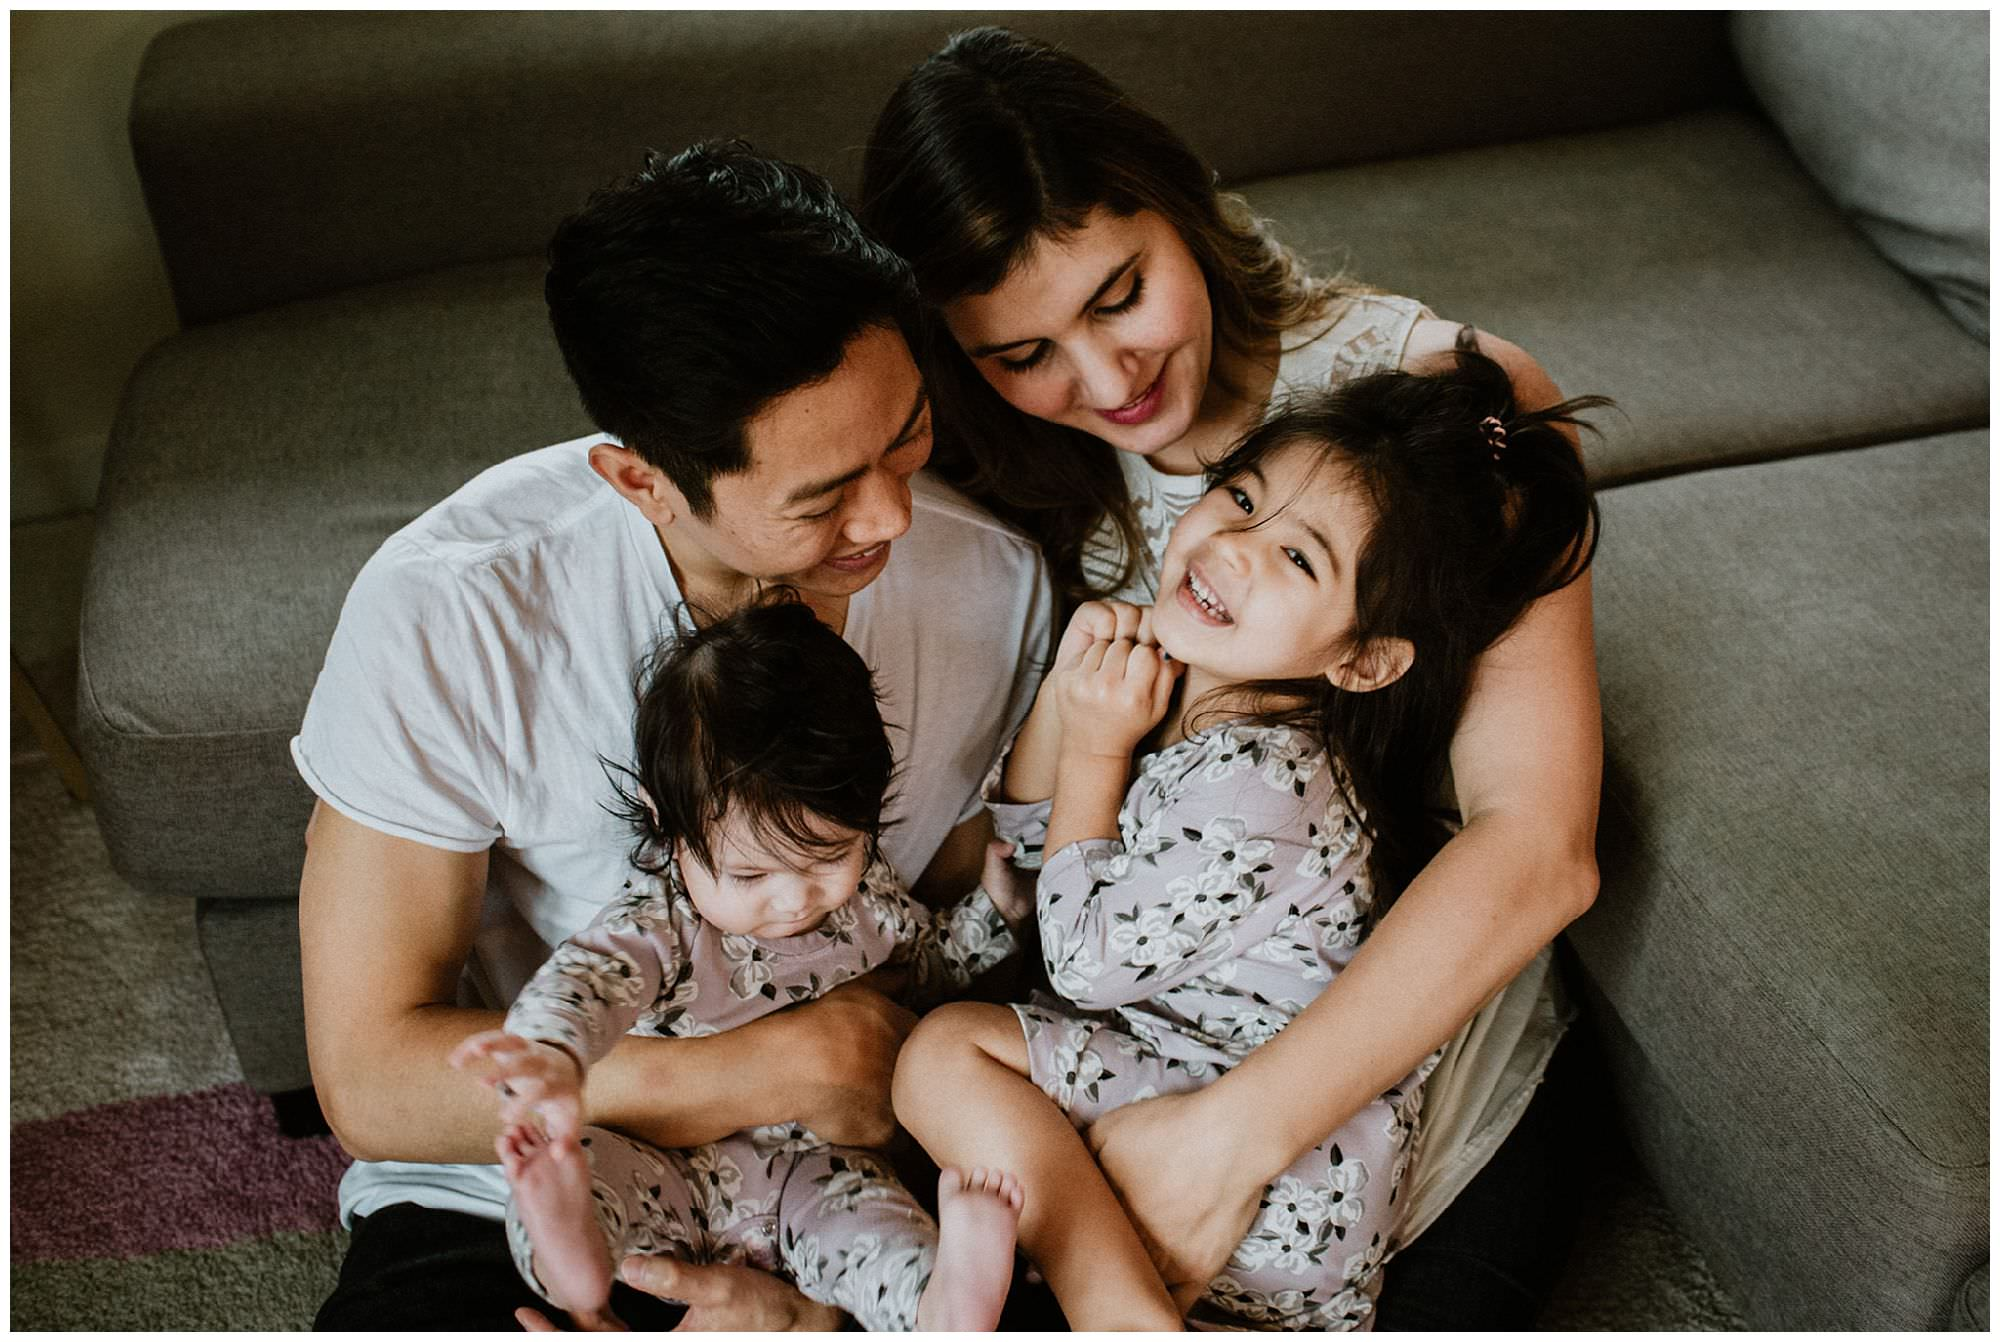 family-cuddling-on-couch-lifestlye-session-Vancouver